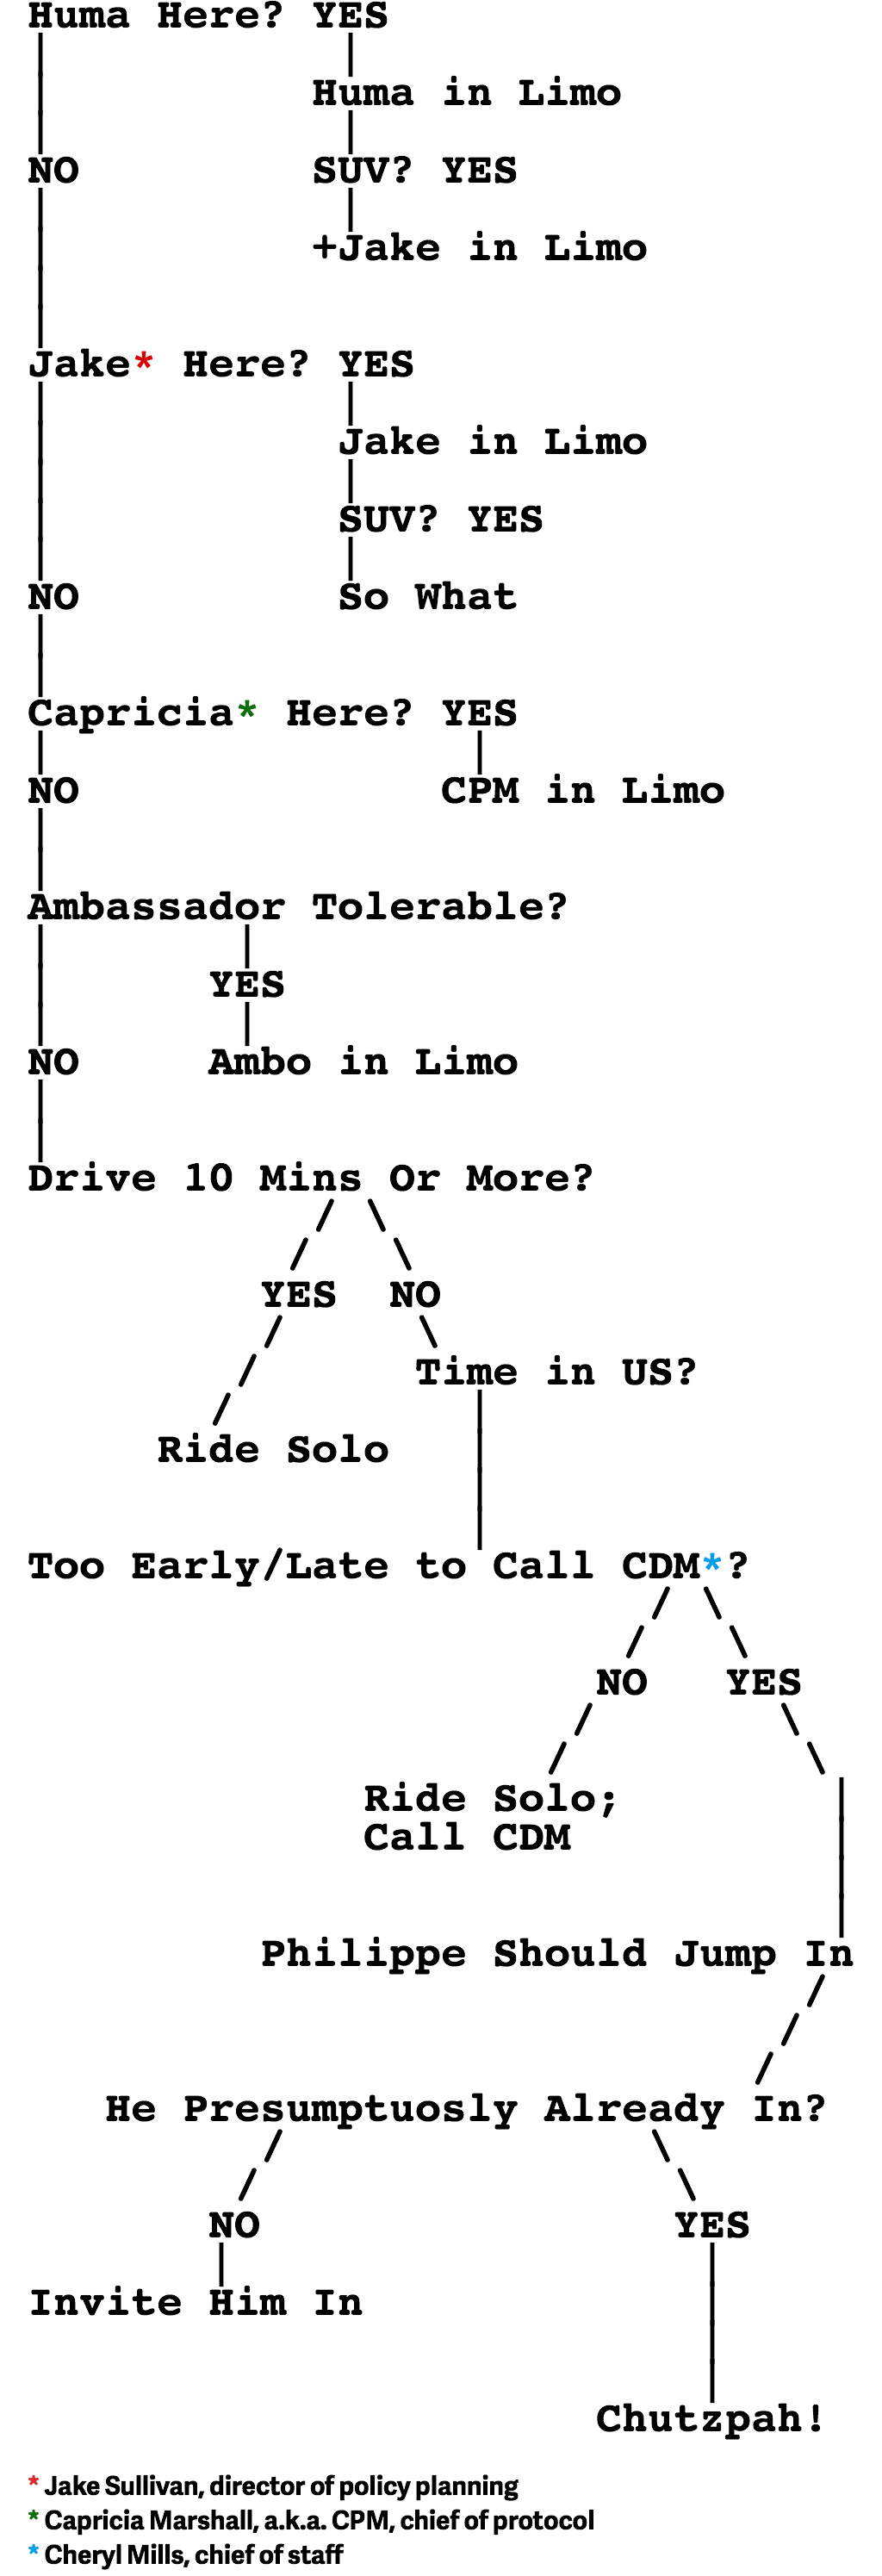 hillary-clinton-emails_flowchart